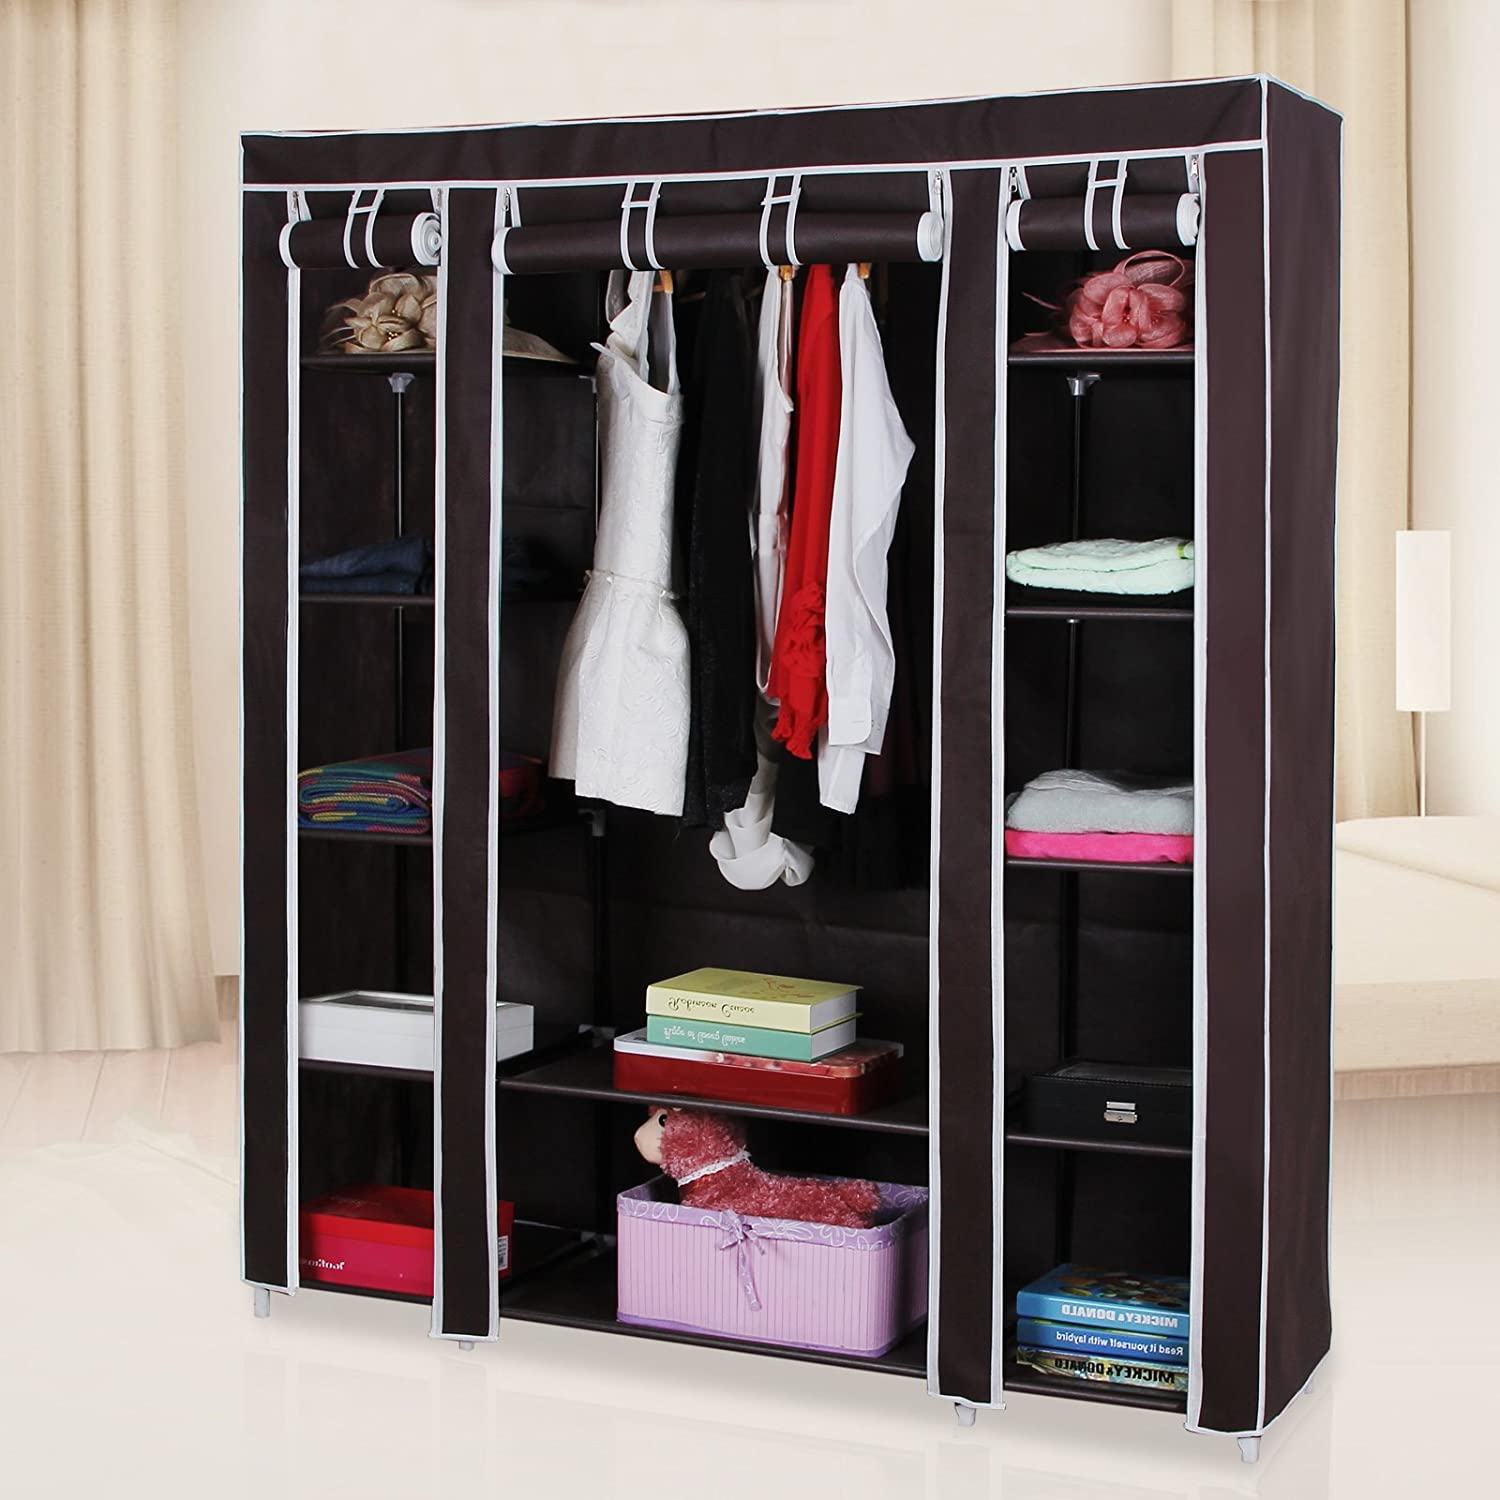 storage wardrobes clothes giantex on wardrobe home non organizer from in closet bedroom woven fabric item furniture modern portable